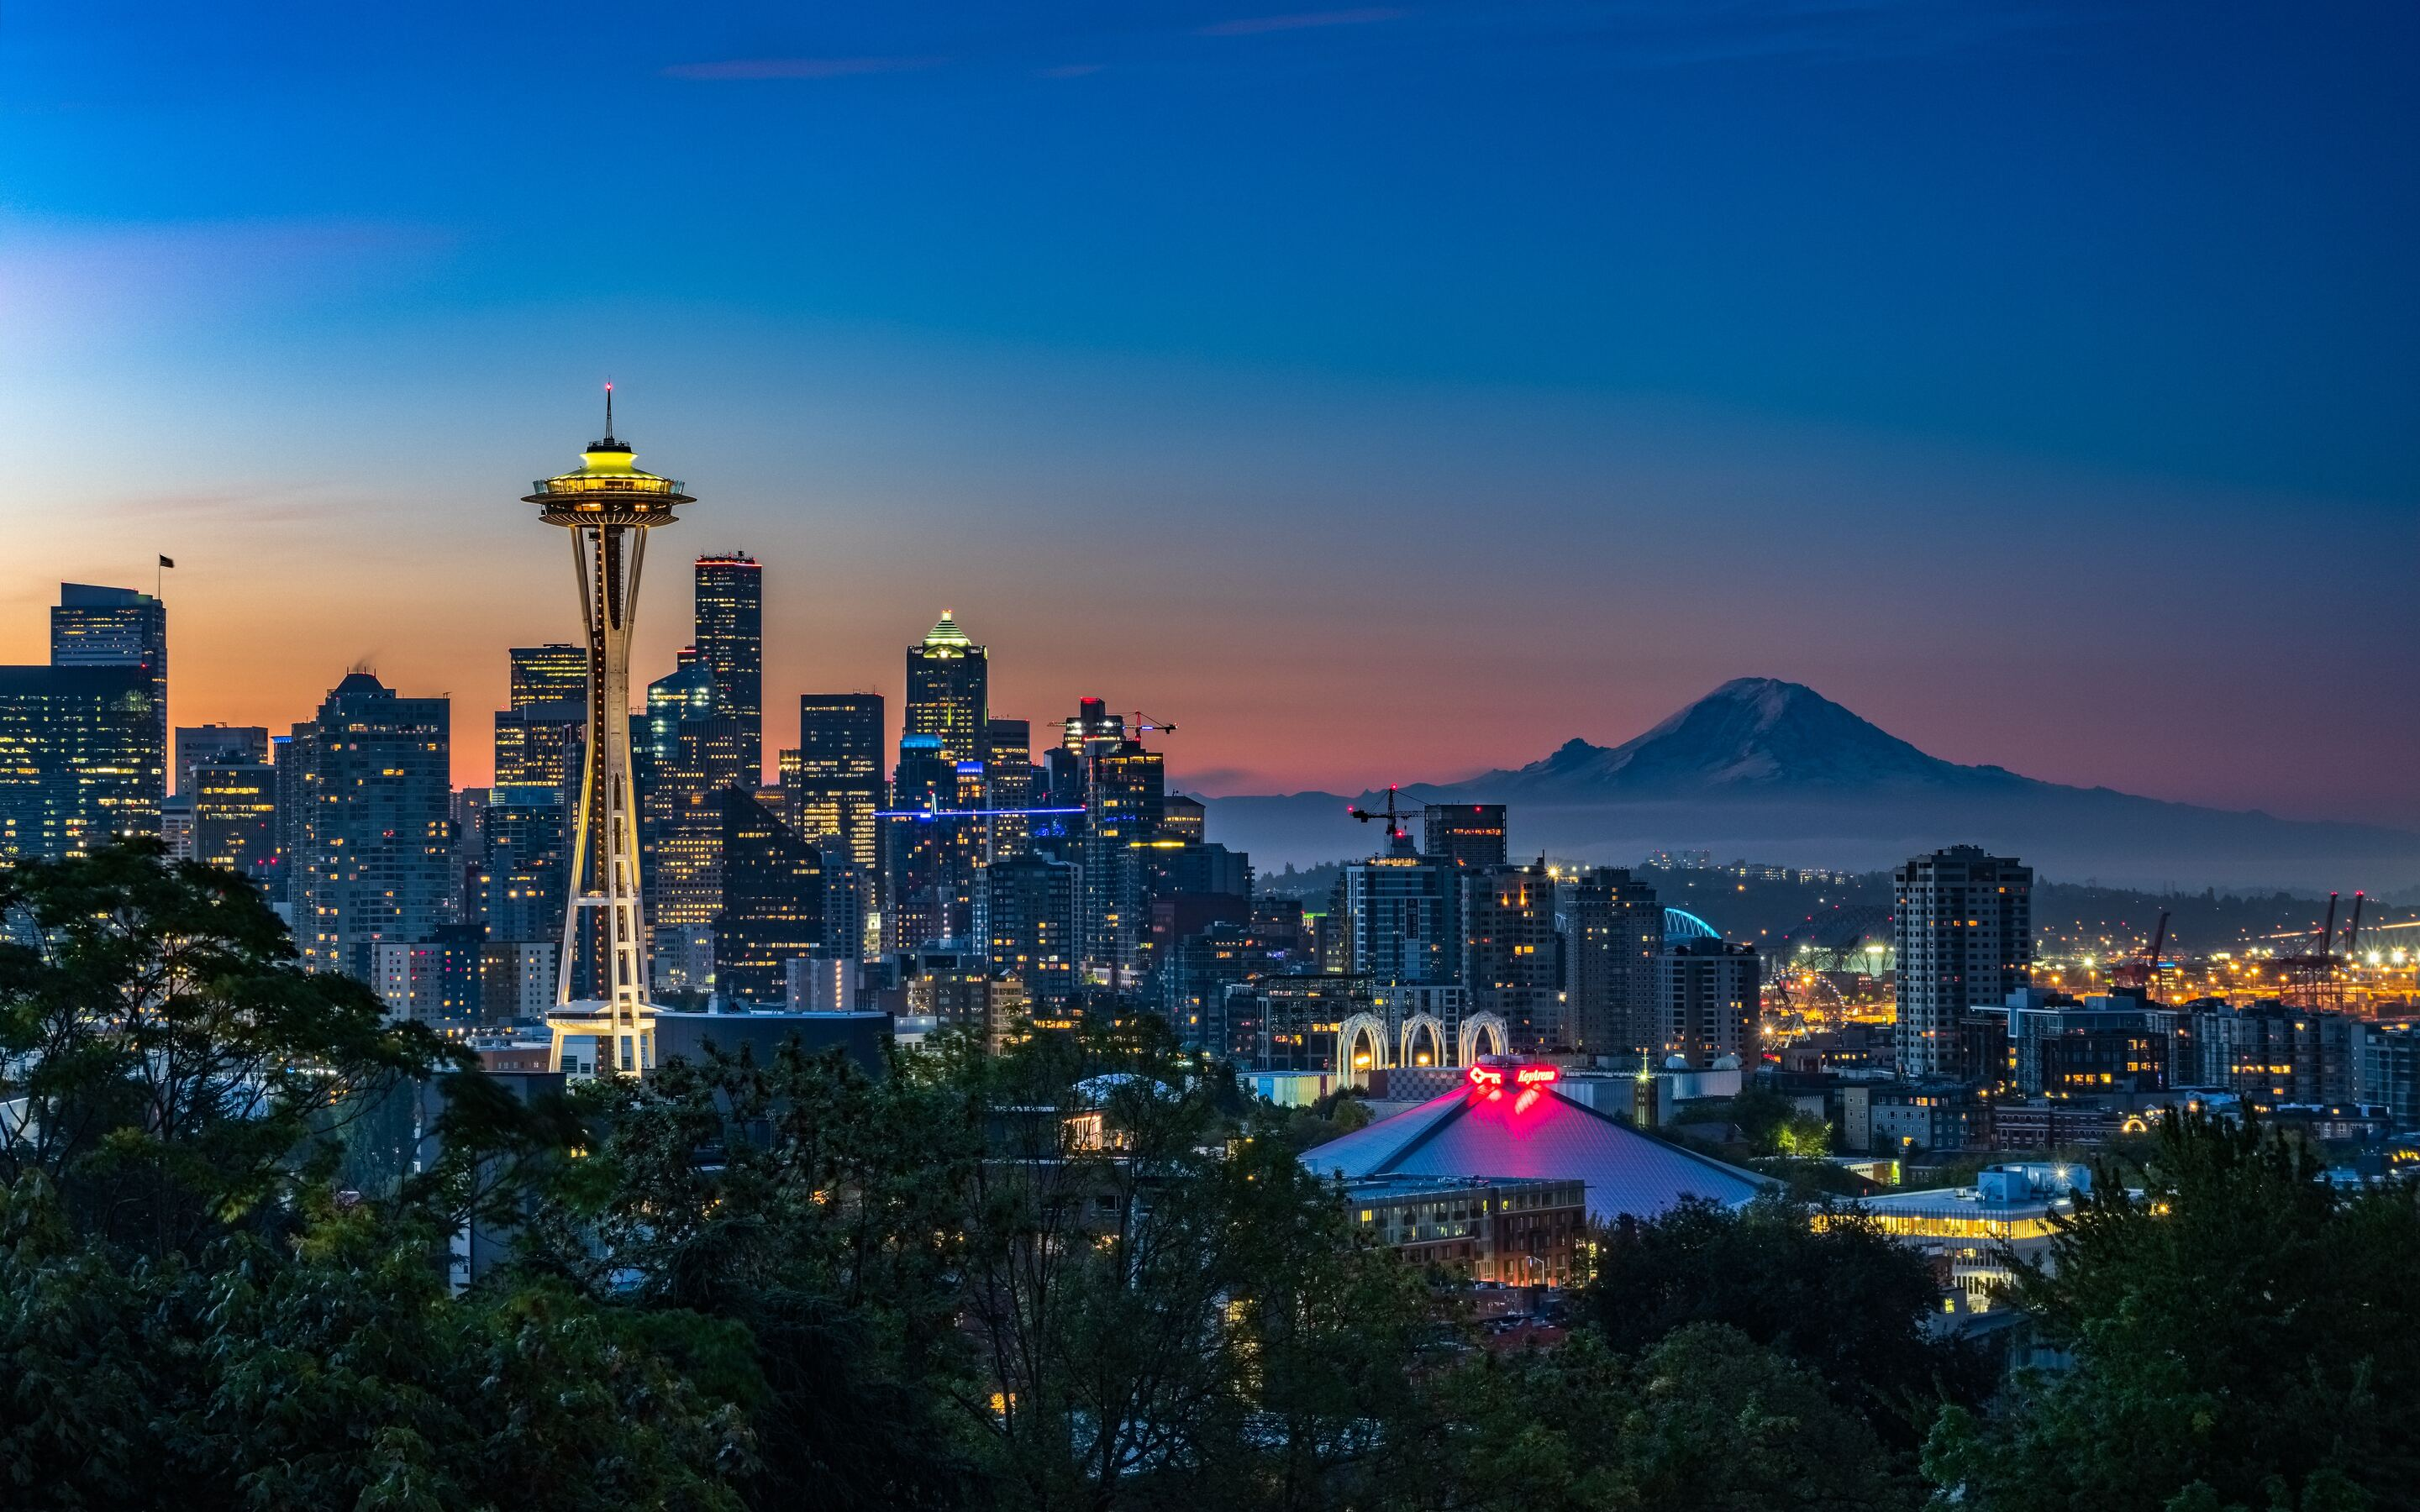 2880x1800 Kerry Park Seattle United States 5k Macbook Pro Retina Hd 4k Wallpapers Images Backgrounds Photos And Pictures